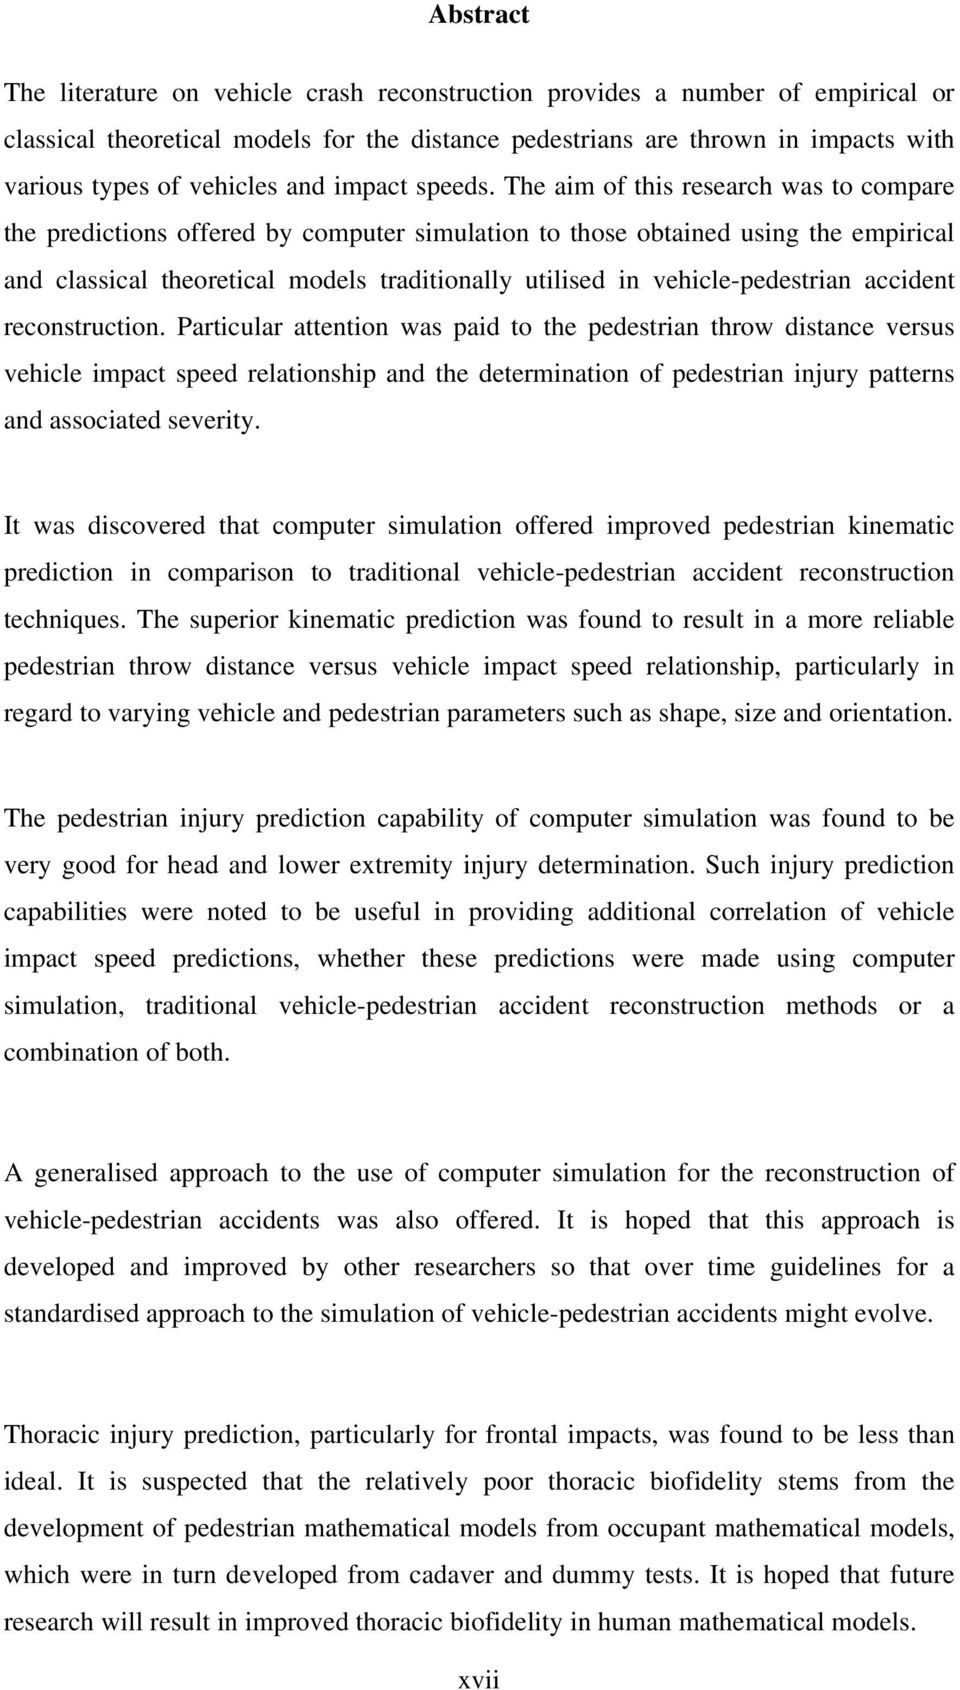 The aim of this research was to compare the predictions offered by computer simulation to those obtained using the empirical and classical theoretical models traditionally utilised in